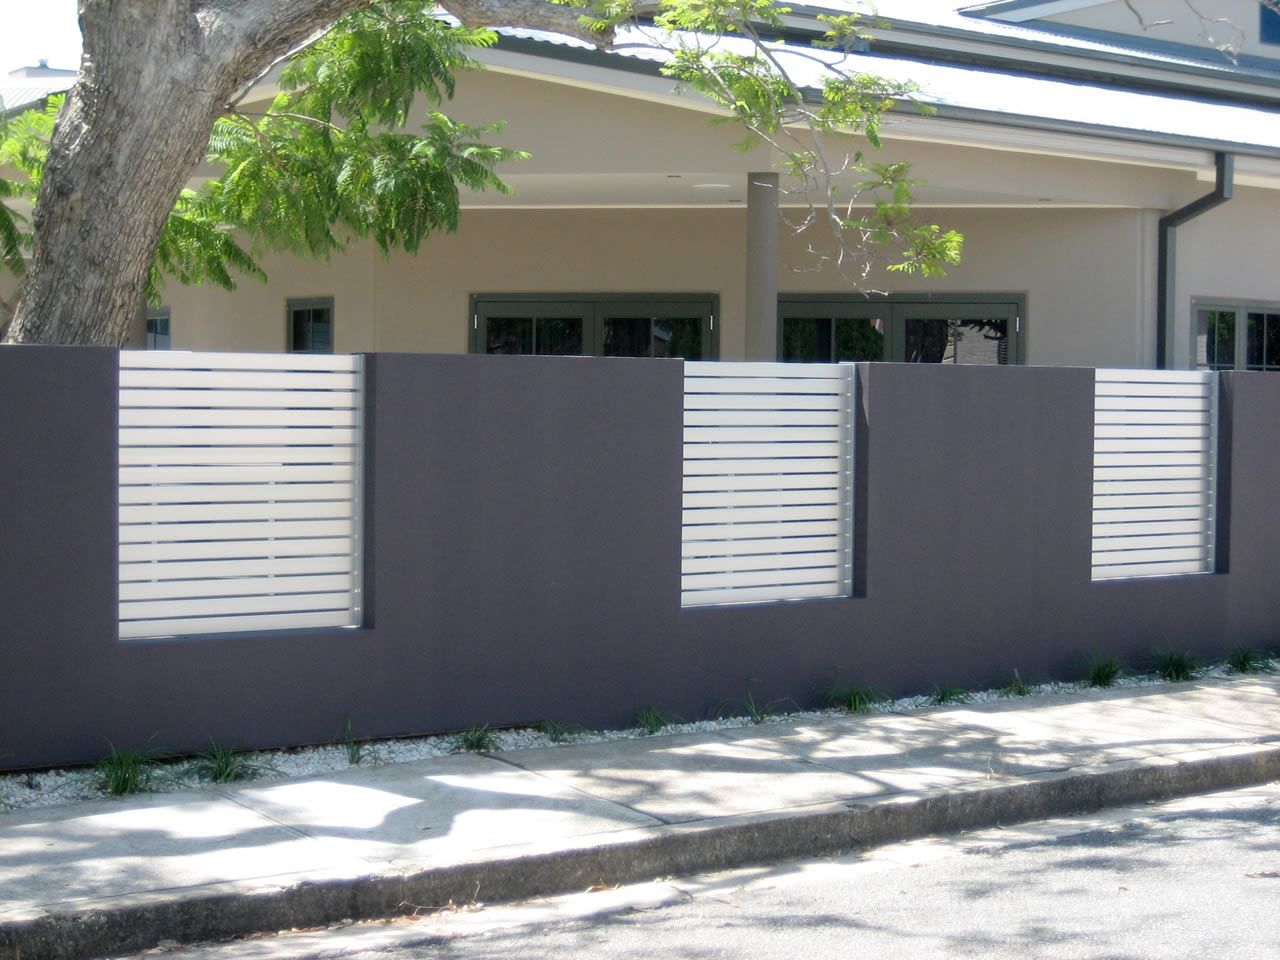 top 25 ideas about gates fences walls on pinterest fence design fence ideas and modular walls